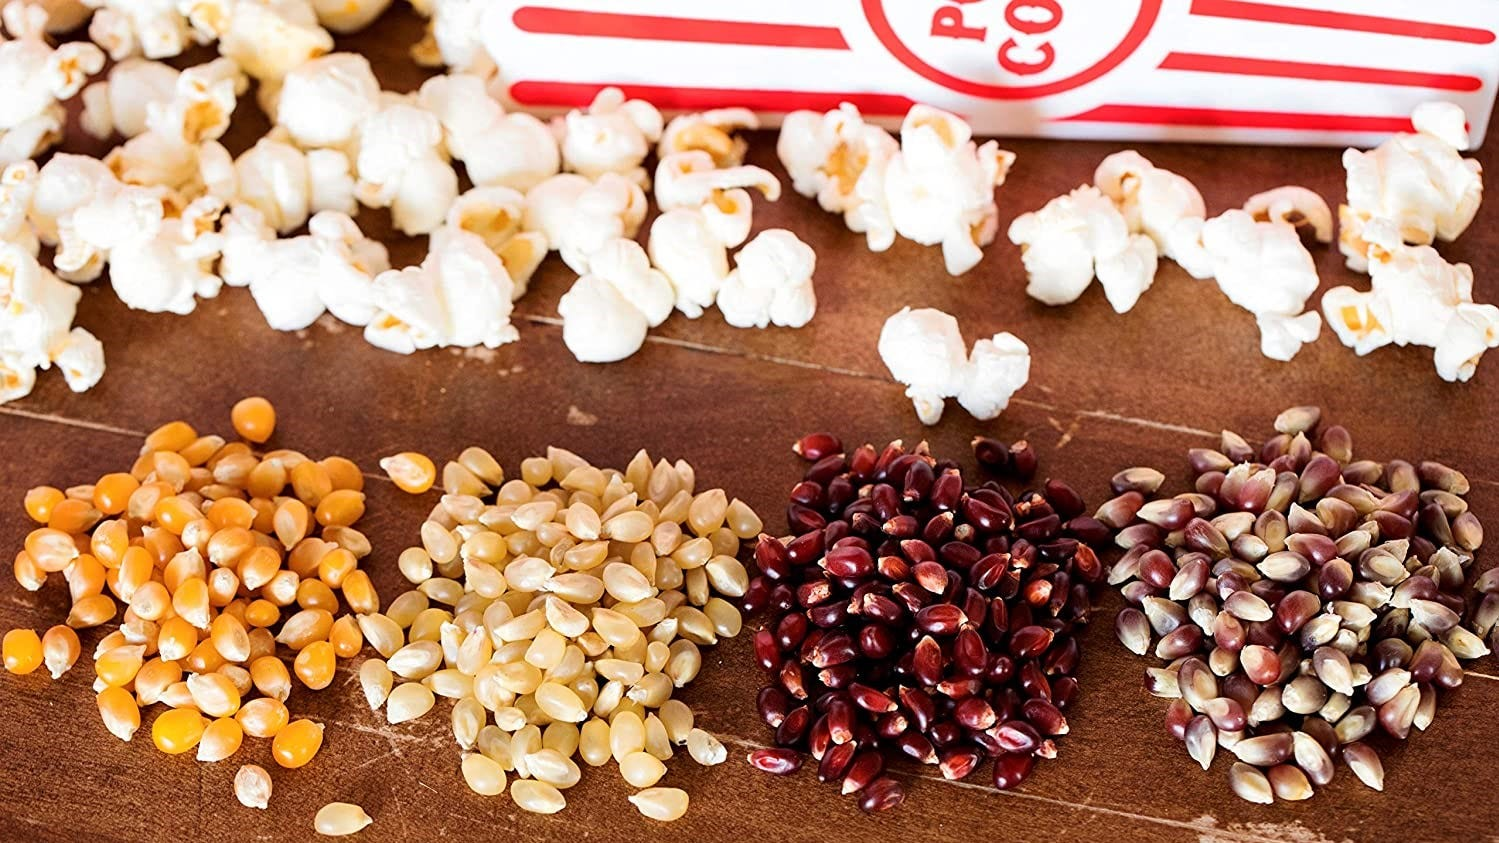 A display of four different types of popcorn kernels.